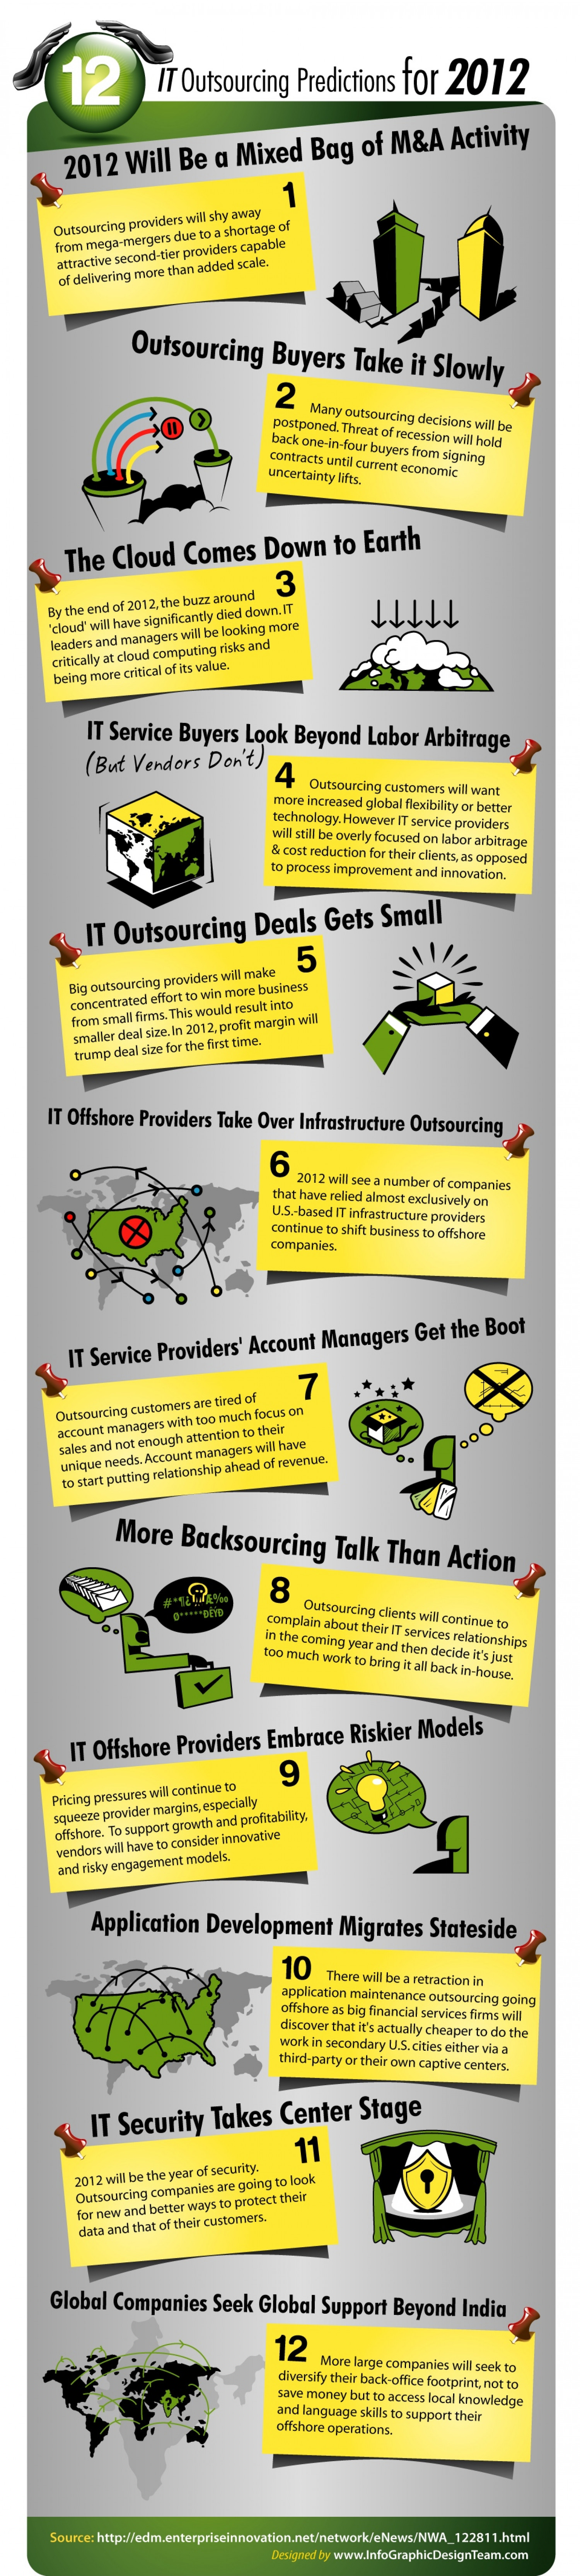 IT Outsourcing Predictions - 2012 Infographic